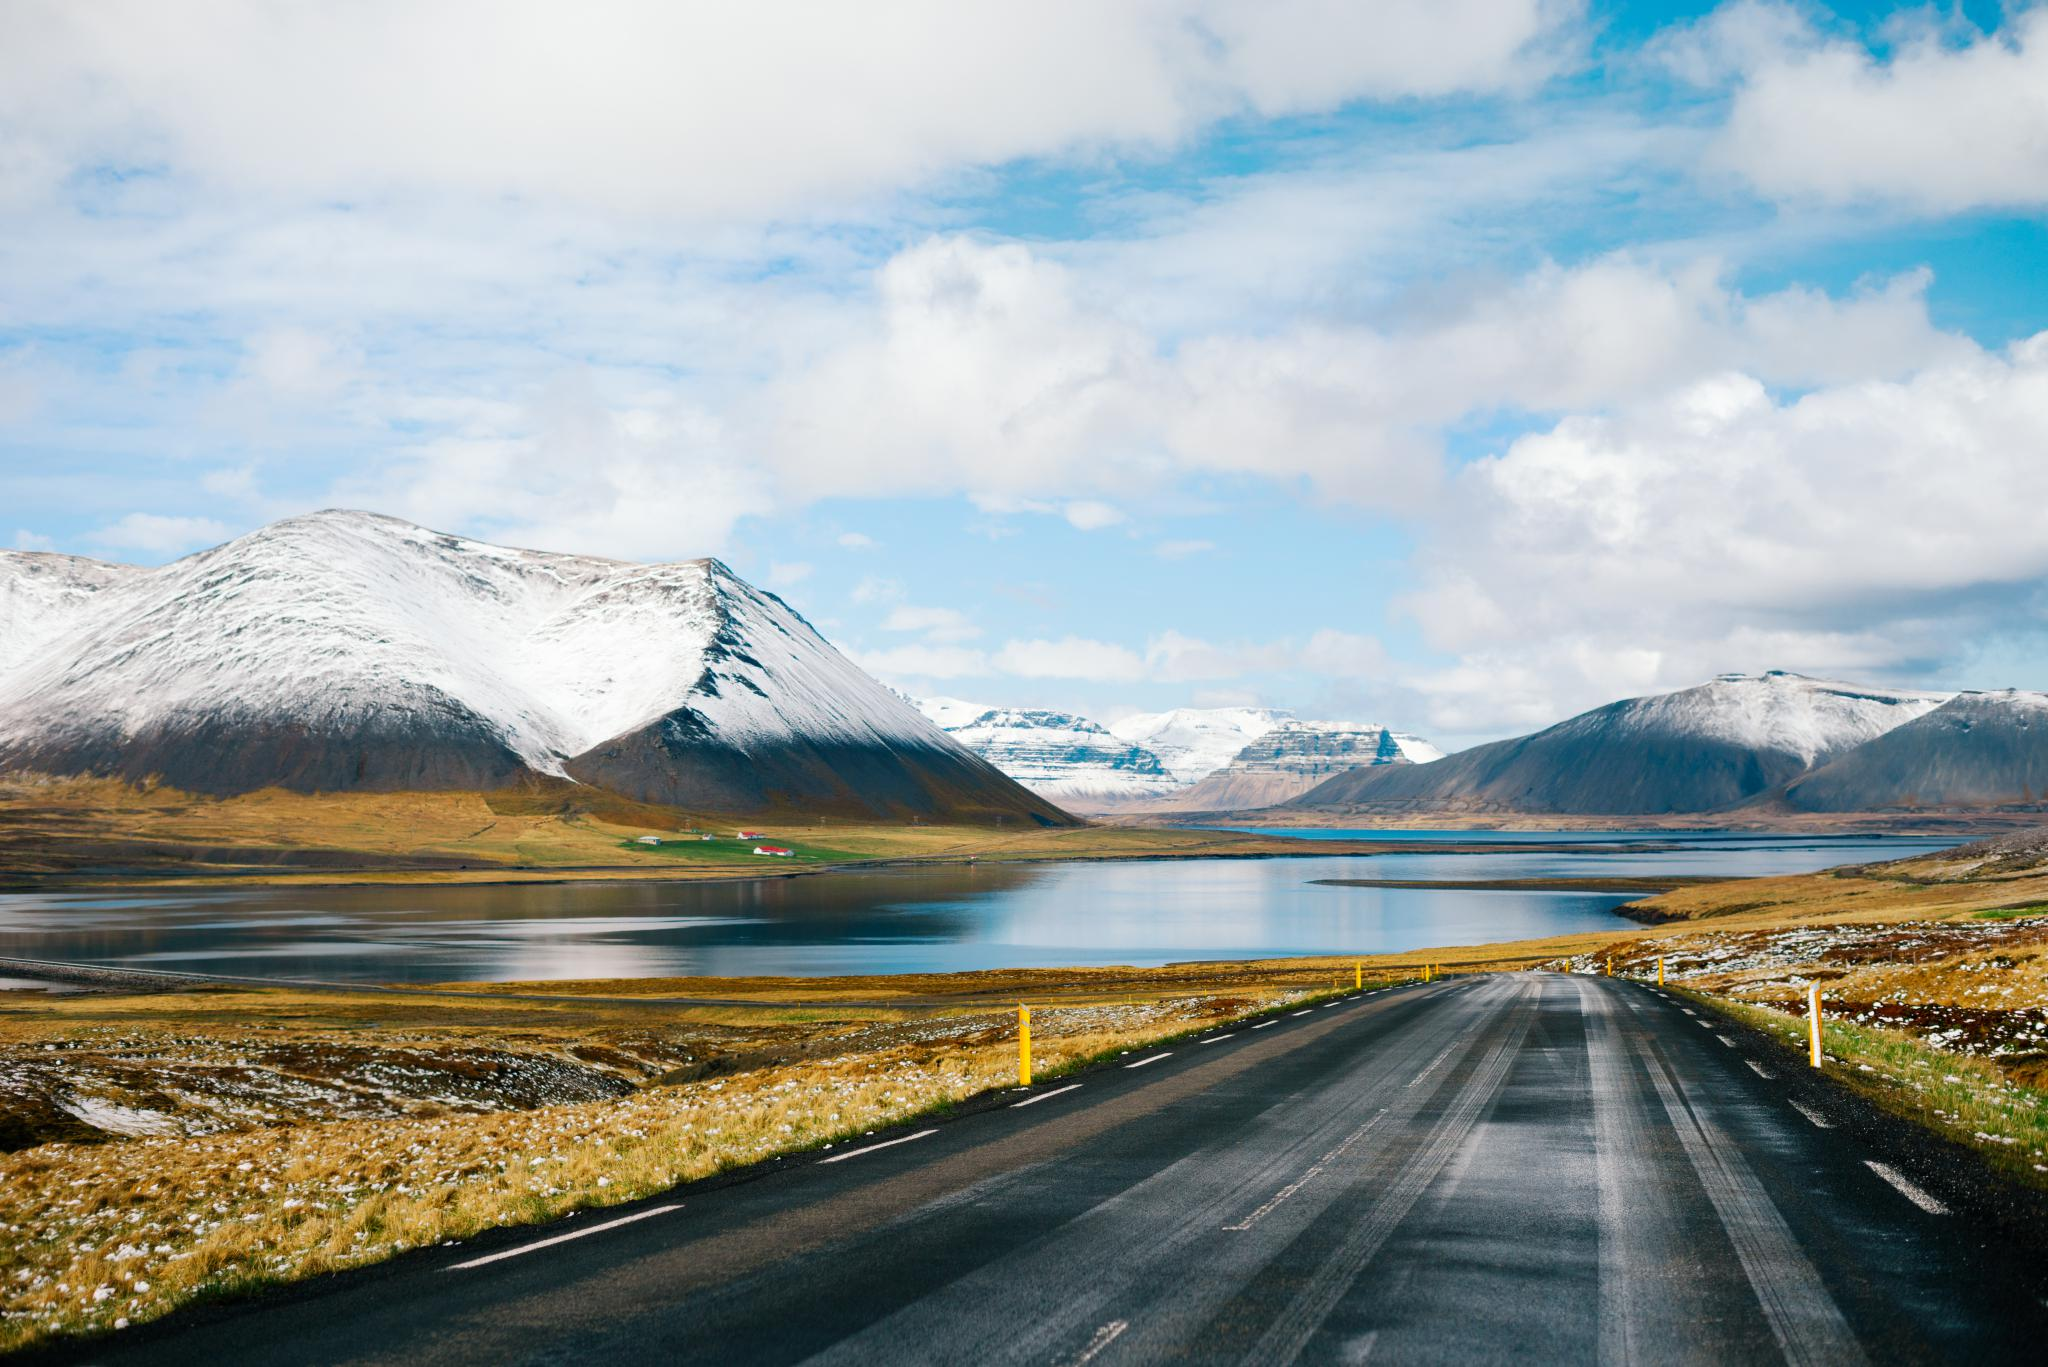 Road through the mountains and fjords in Snaefellsnes peninsula Iceland